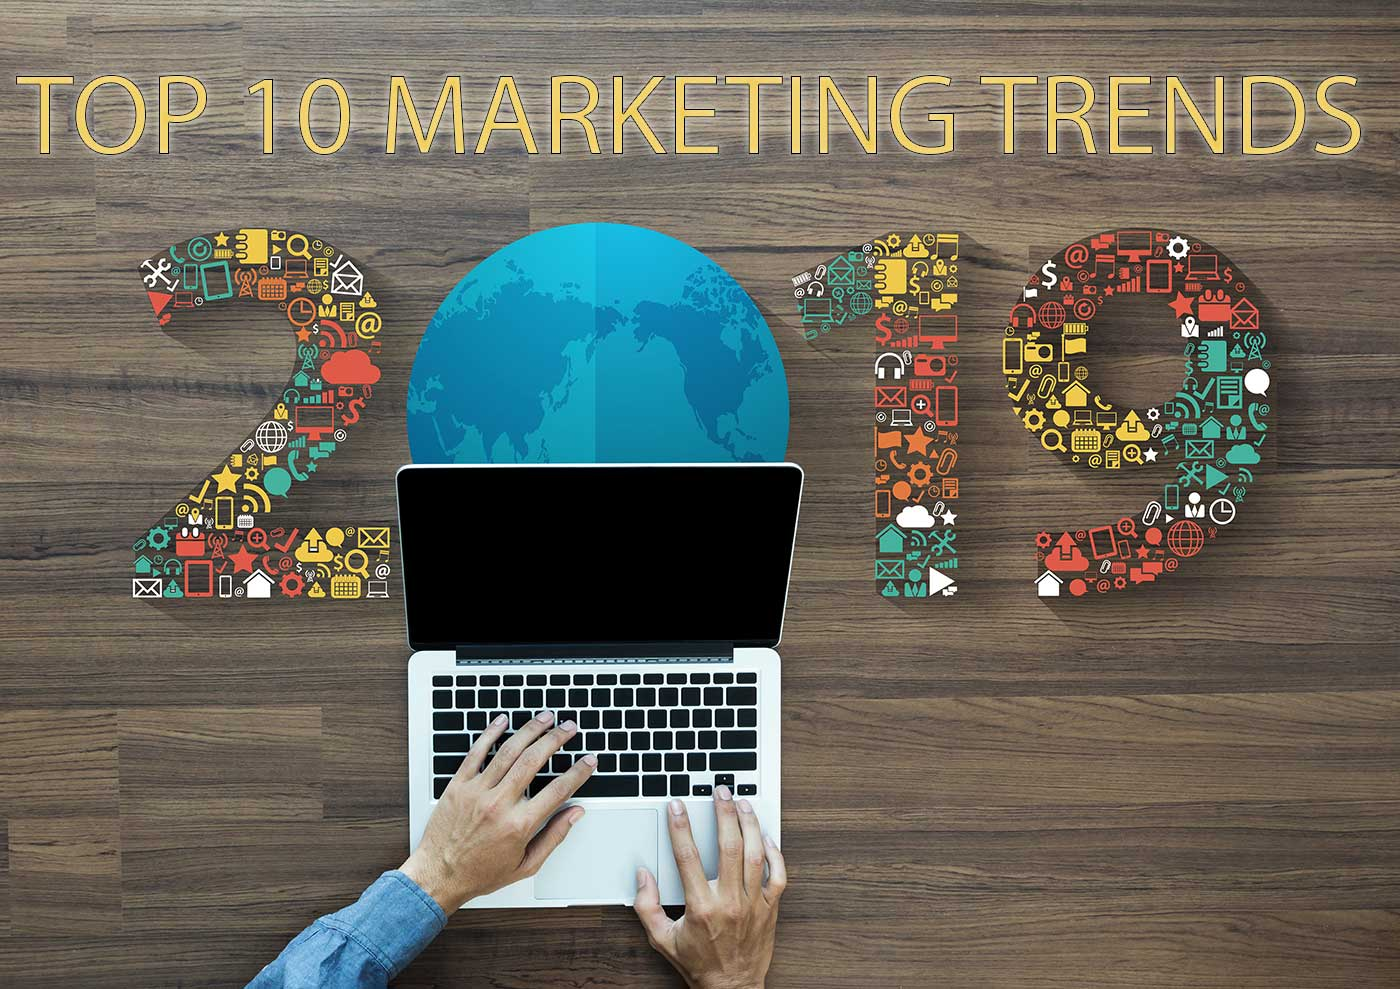 Top 10 Marketing Trends In 2019